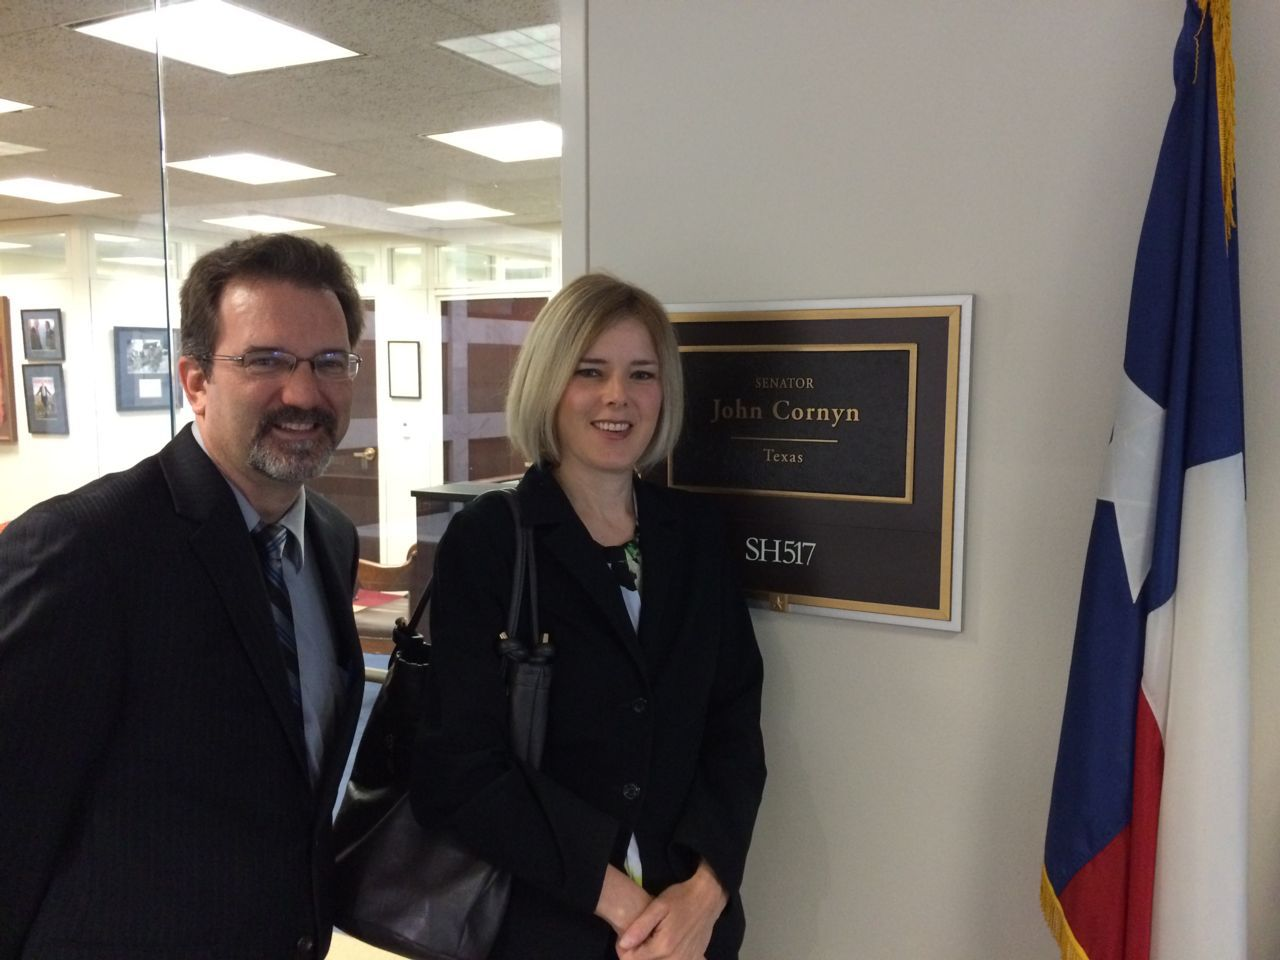 Morgan & Weisbrod attorneys travel to DC